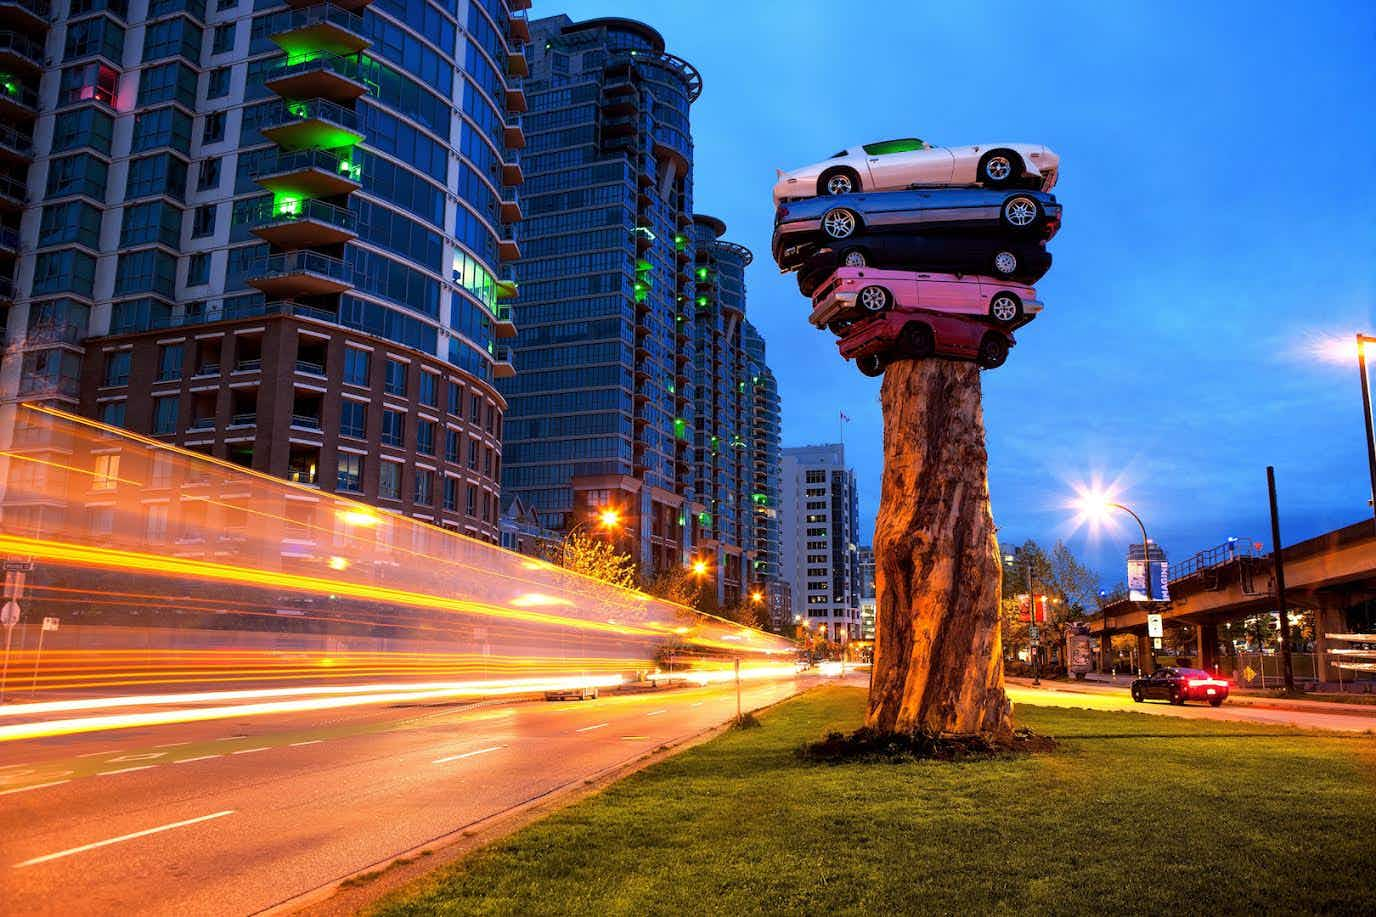 Vancouver's Trans Am Totem art installation may soon need a new parking spot